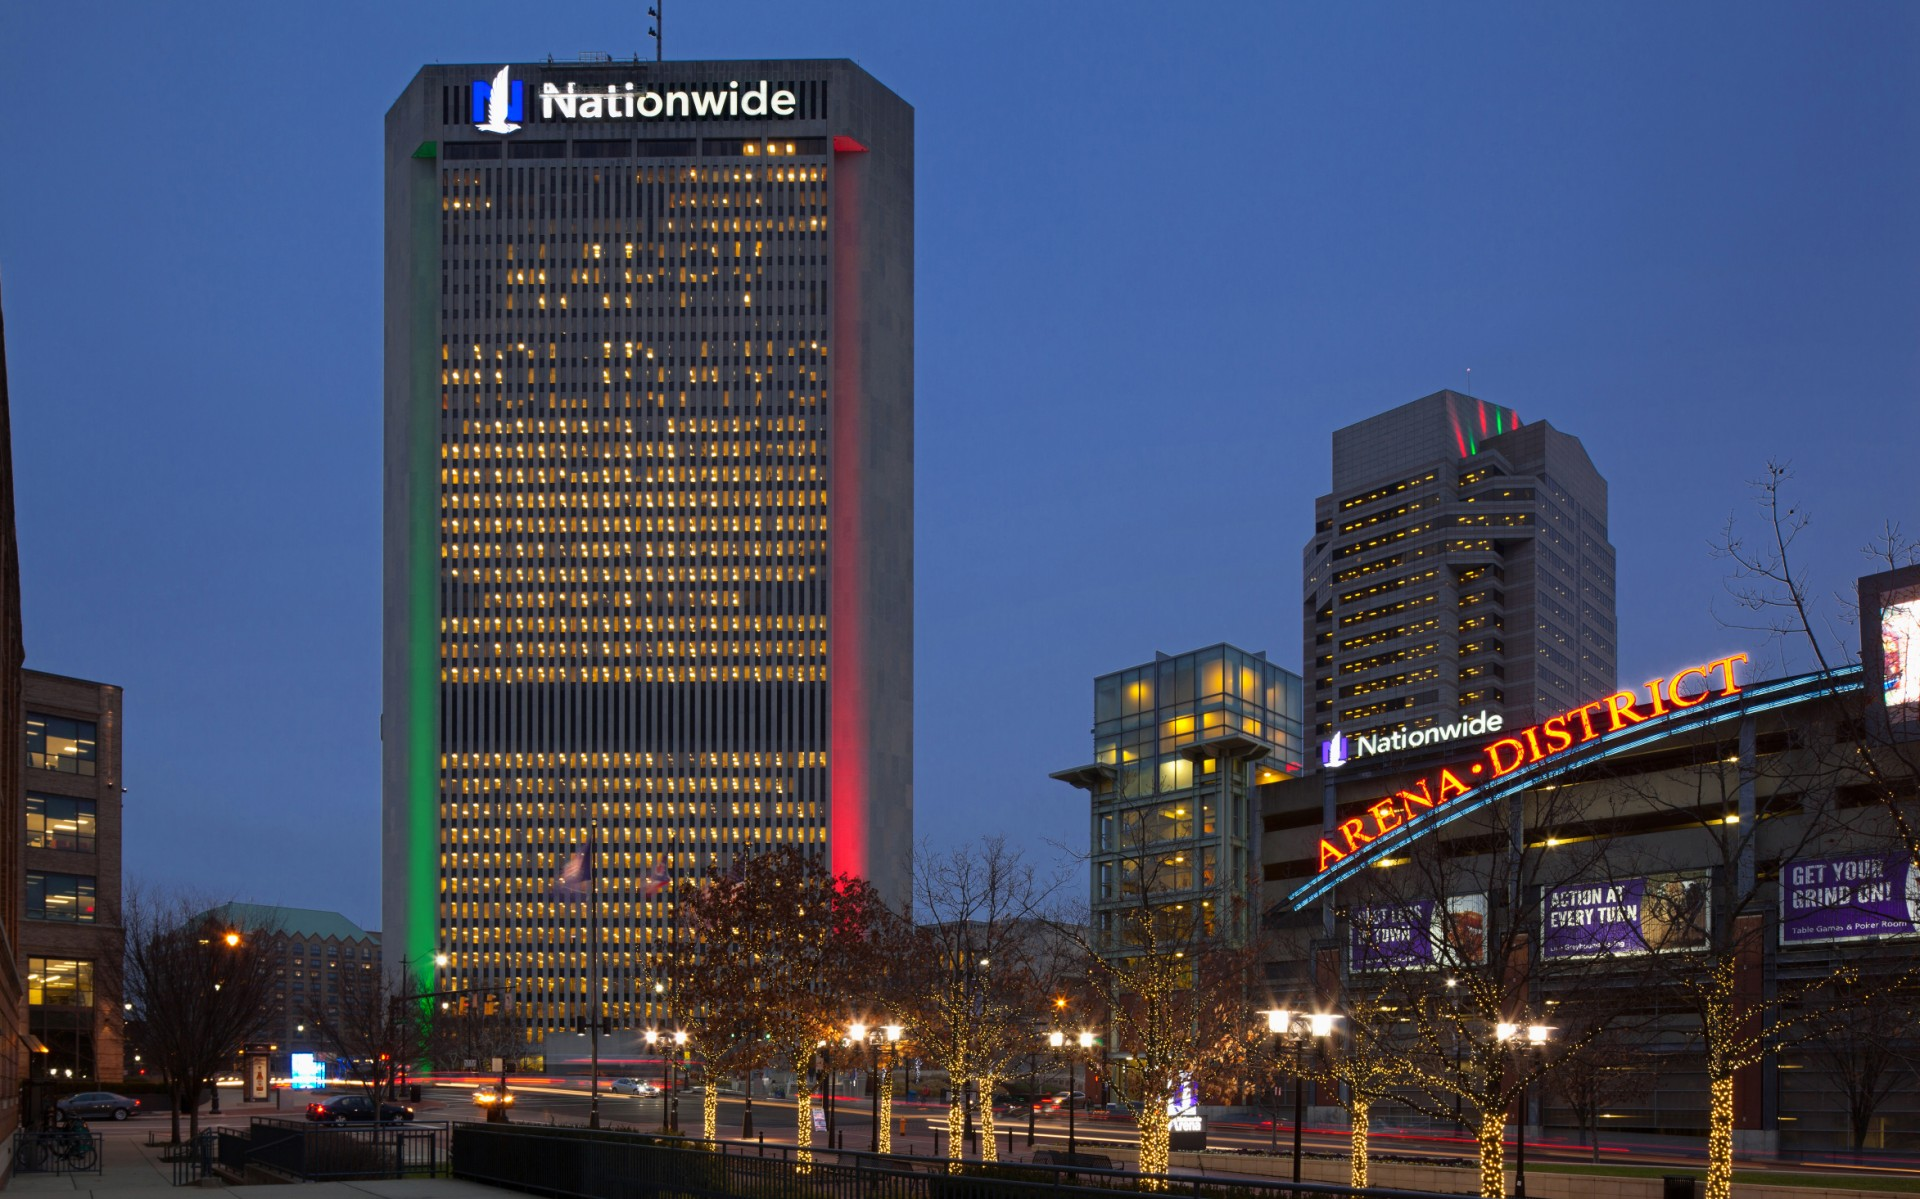 At the Nationwide Plaza complex, Lighting Systems of Columbus Inc. (LSC) used Lumentalk technology to convert the lighting systems to LED.